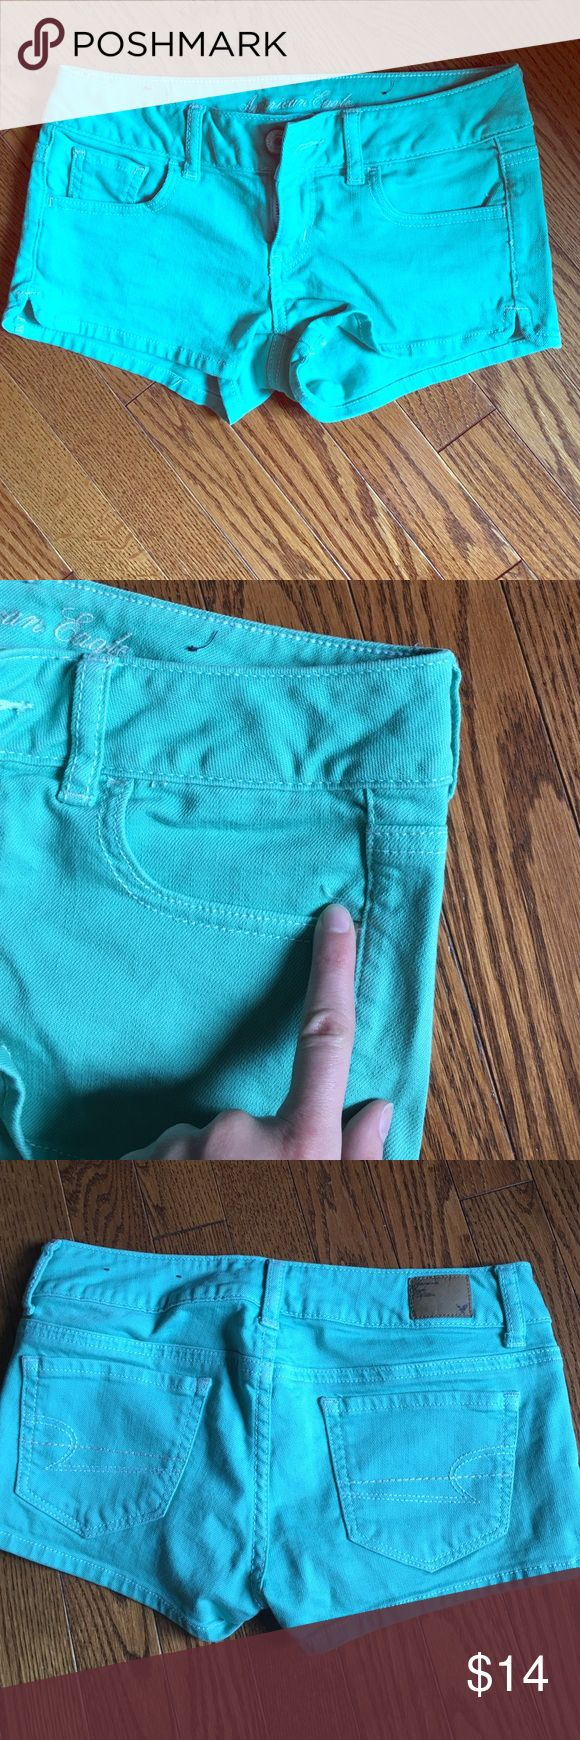 American eagle Aqua shorts size 0 Pretty Aqua colored shorts. Hardly worn size 0 tiny snag in picture more of a green/blue tone than picture shows American Eagle Outfitters Shorts Jean Shorts